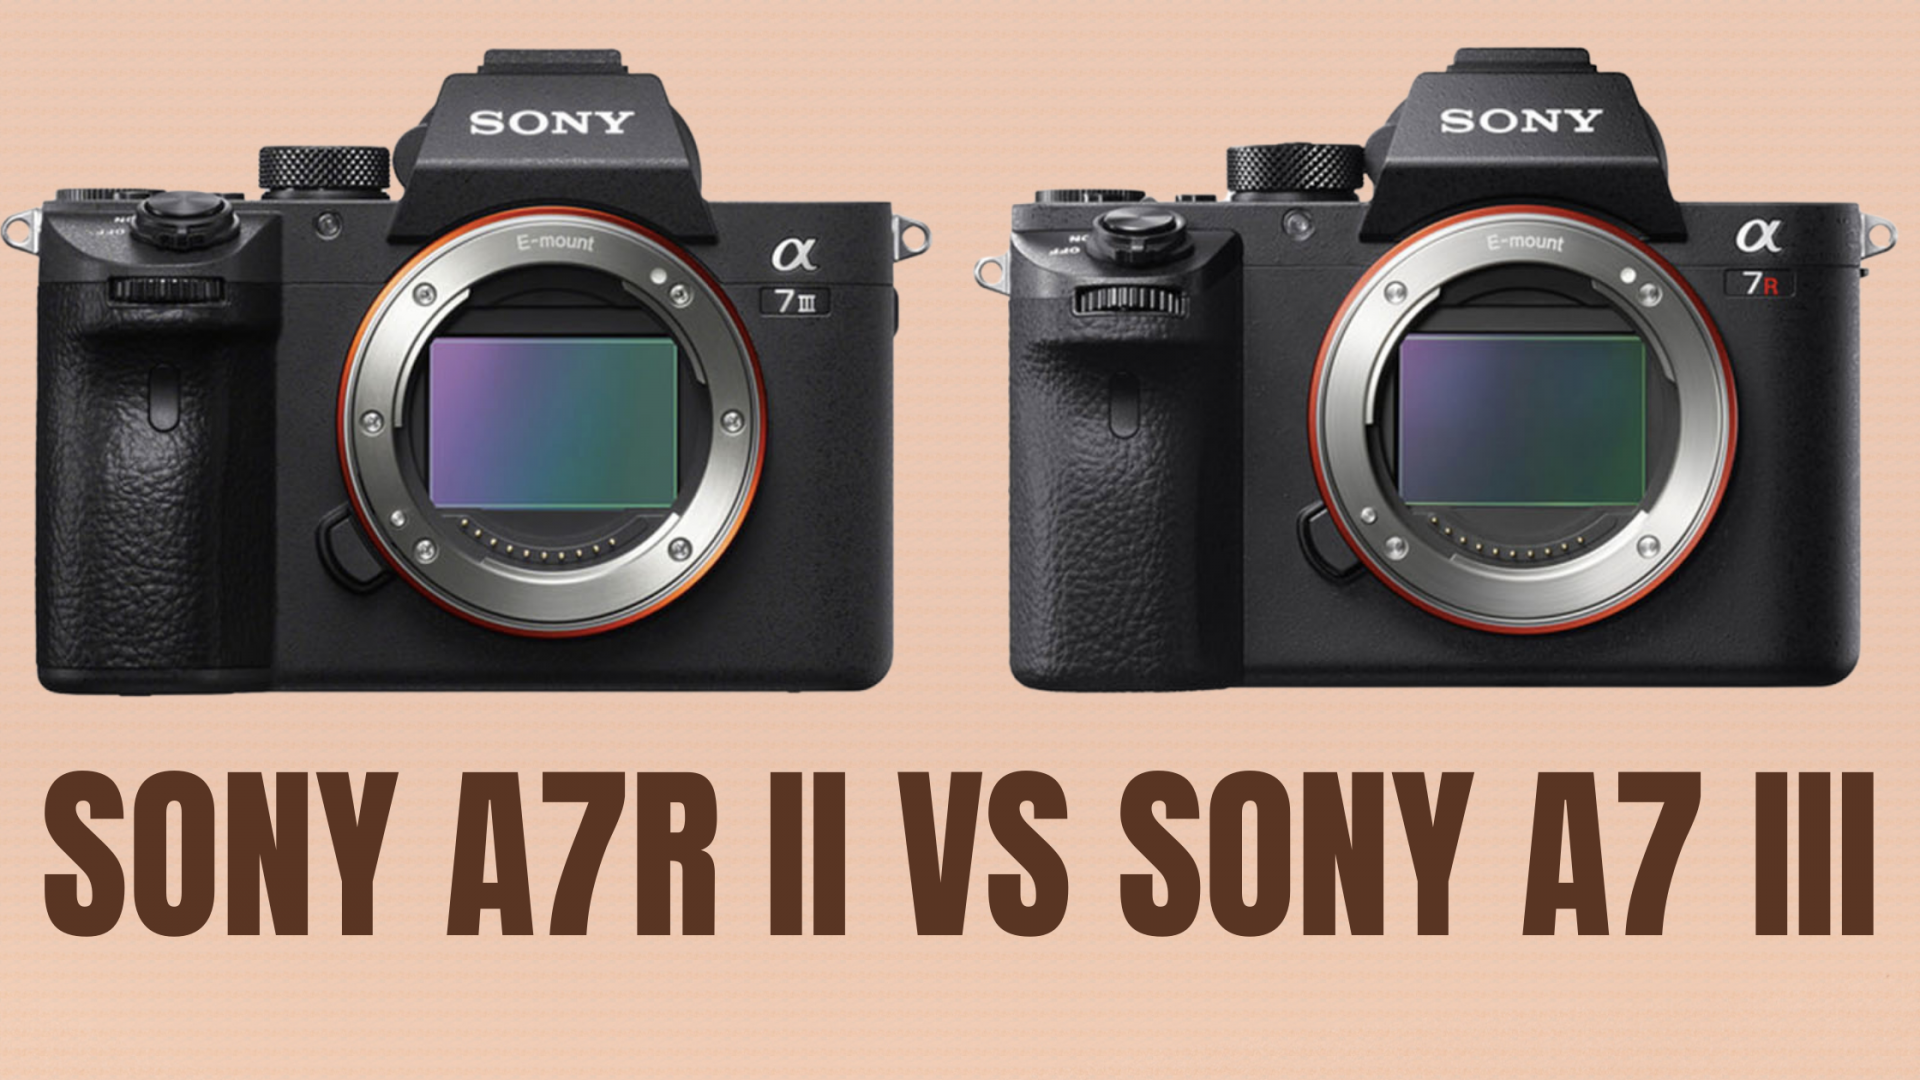 Sony A7R II VS Sony A7 III (Which one to choose)